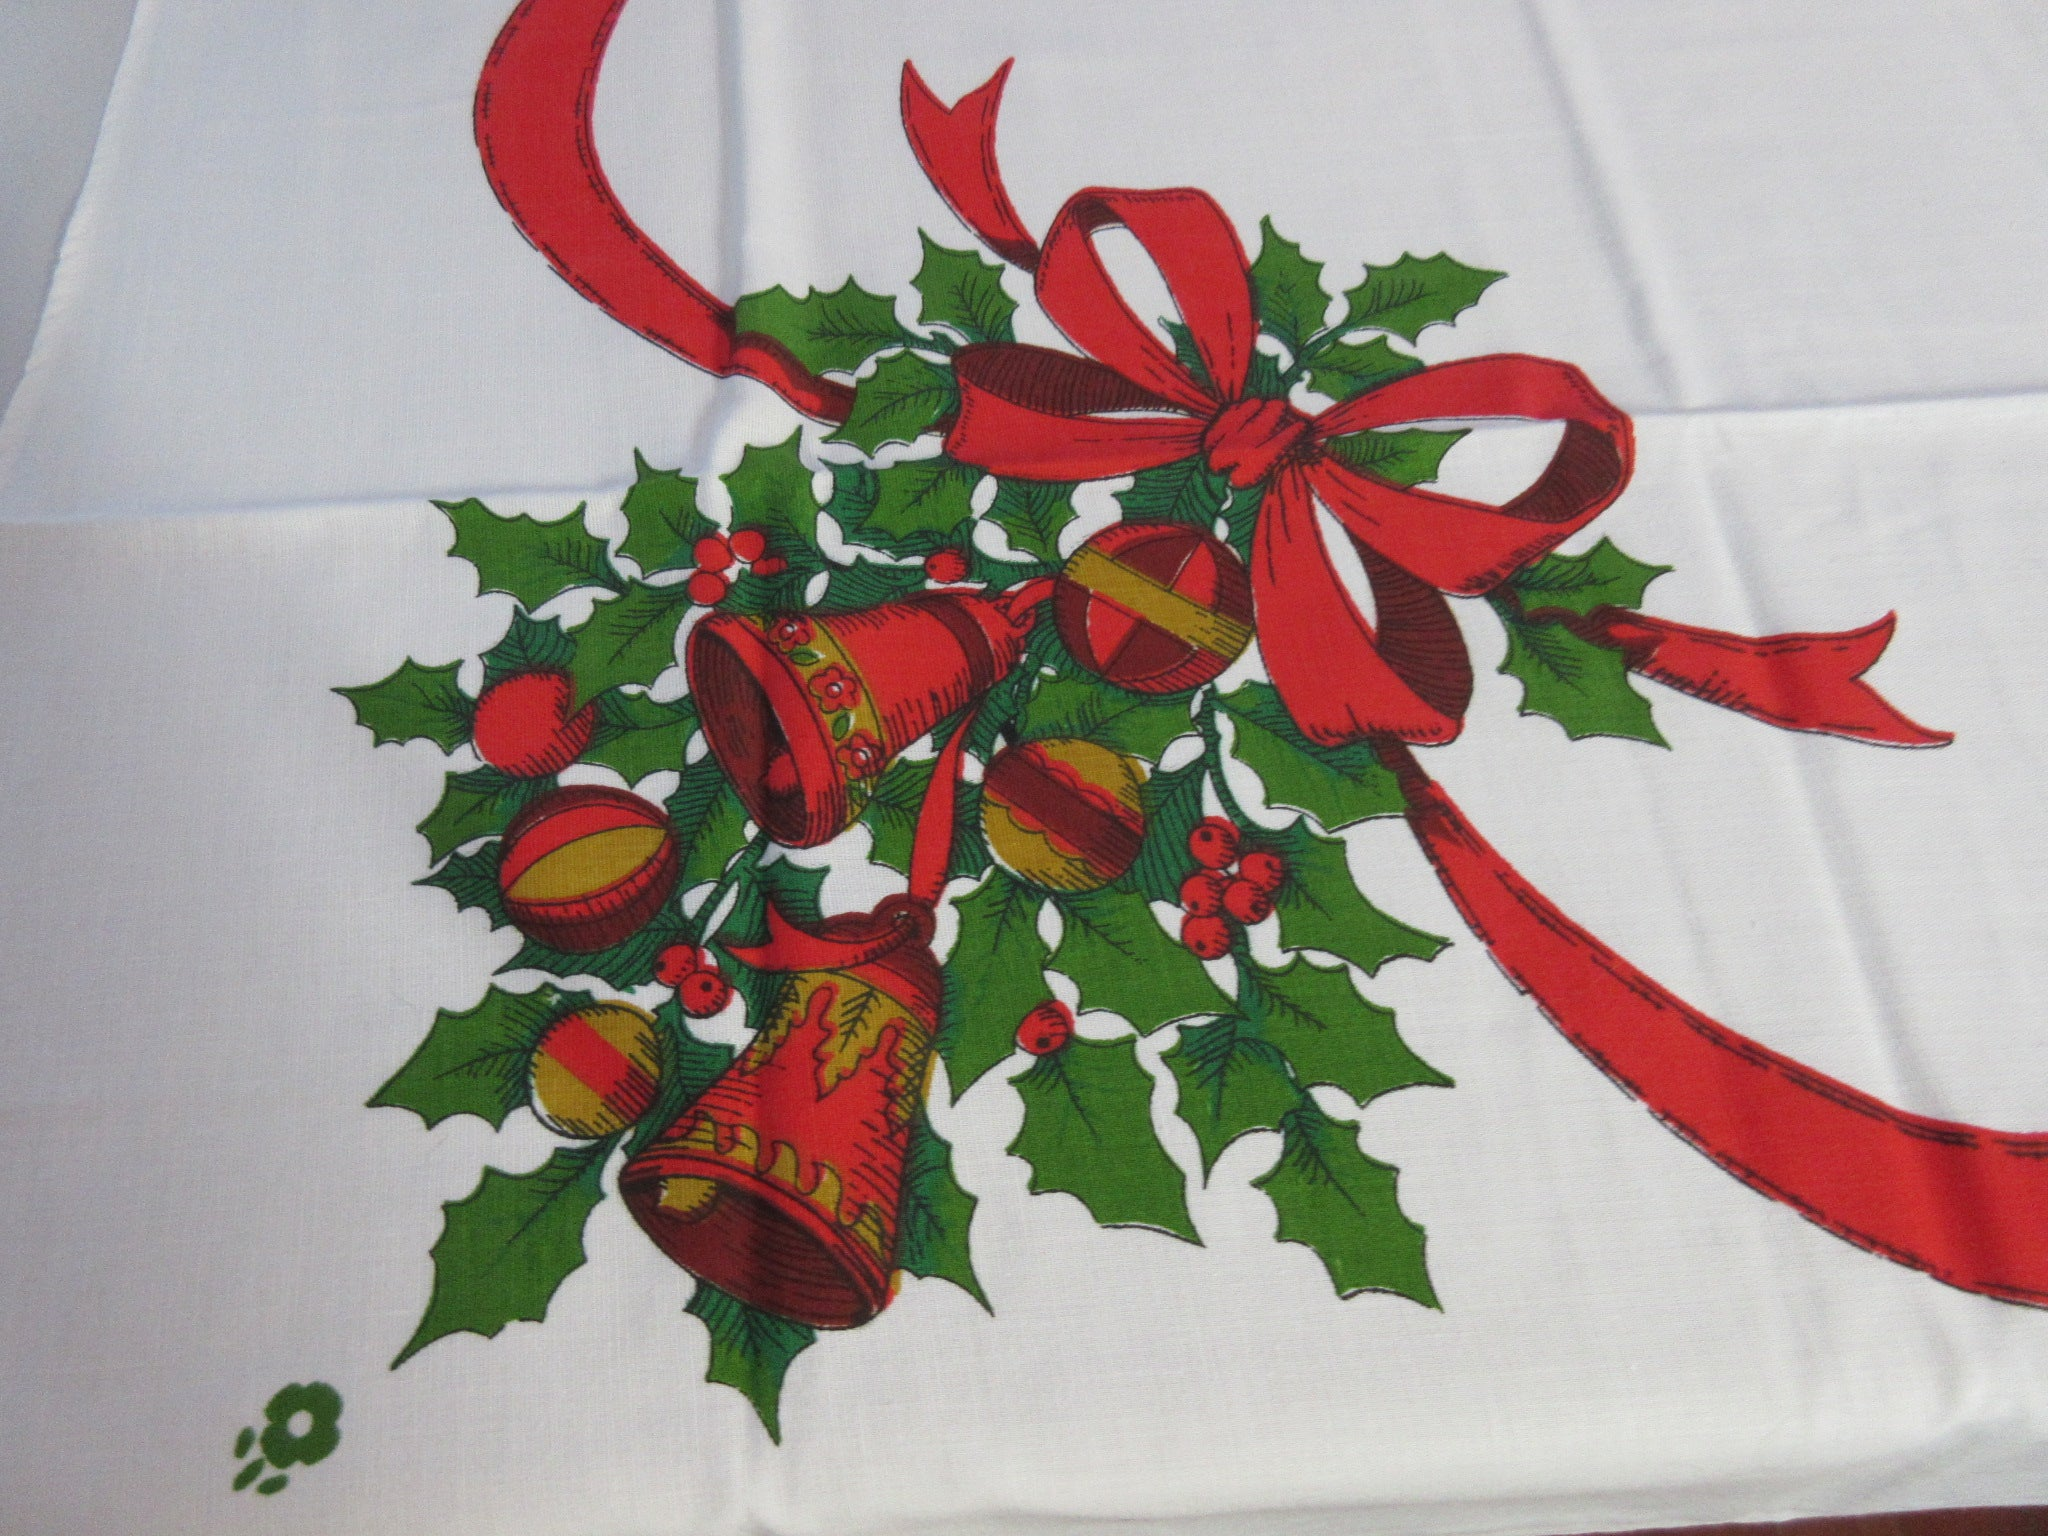 SQUARE 52x52 60s Bells MWT Vintage Printed Tablecloth (52 X 51 actual)